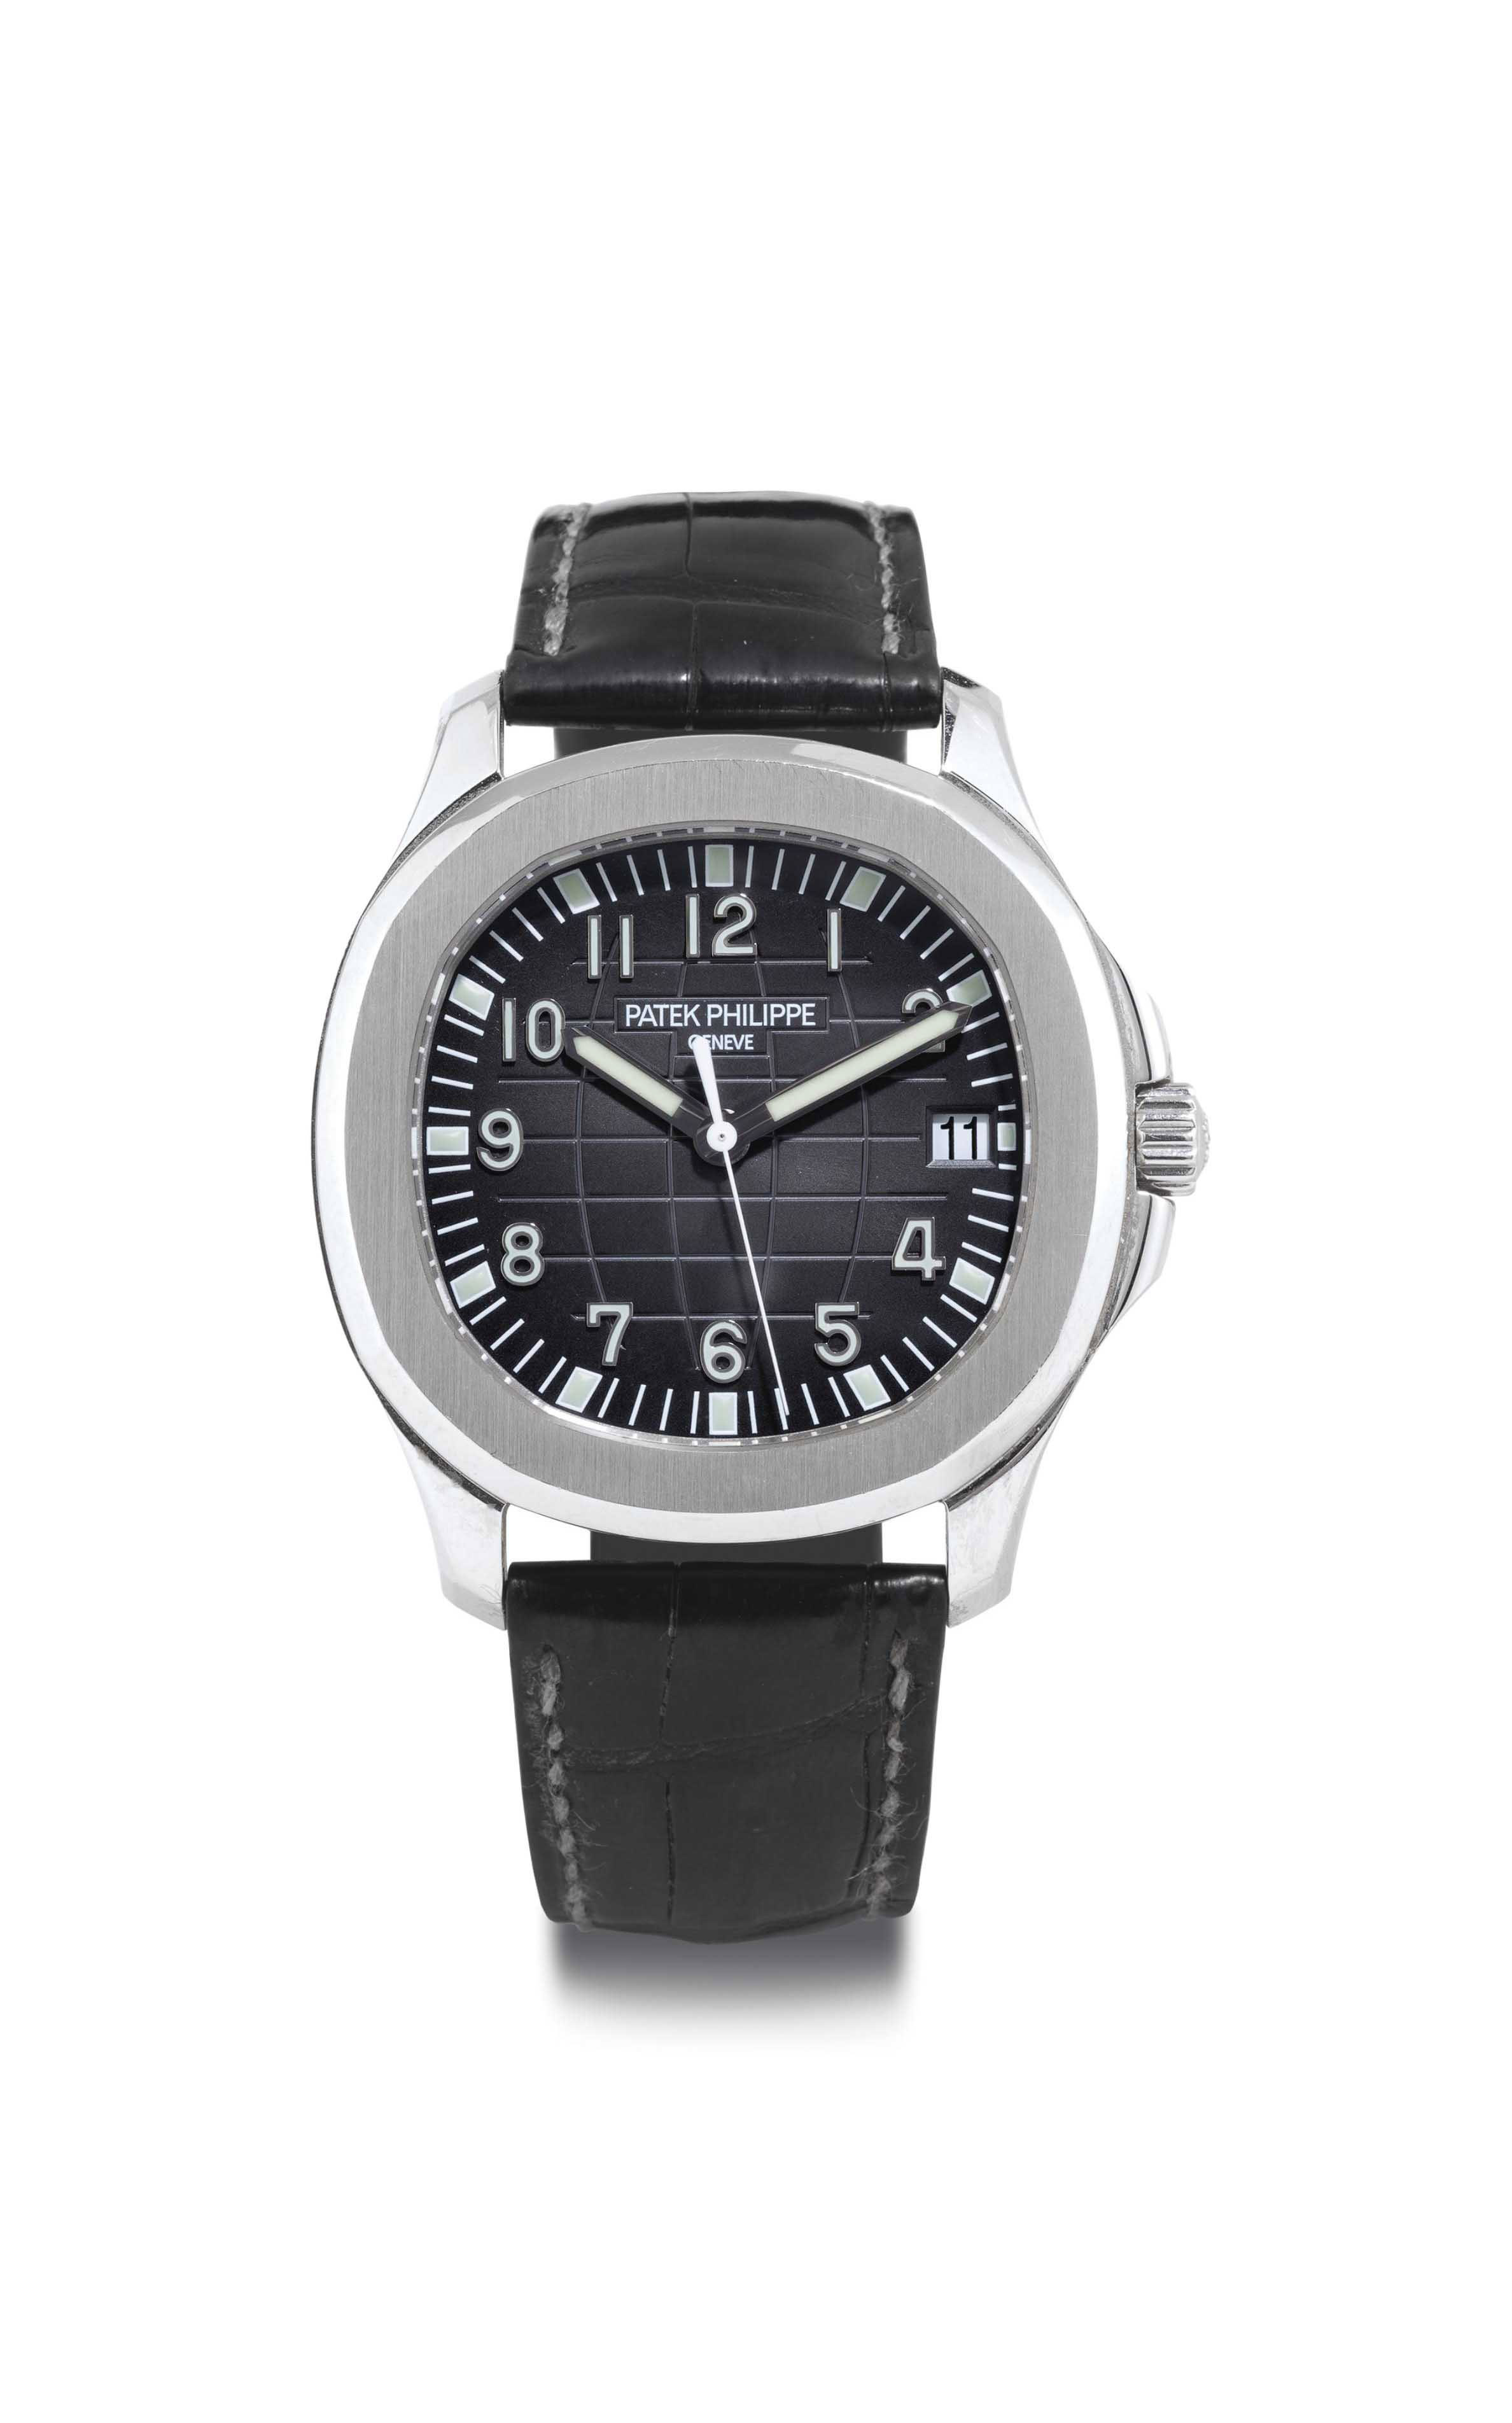 Patek philippe a stainless steel automatic wristwatch with date and center seconds signed for Patek philippe geneve